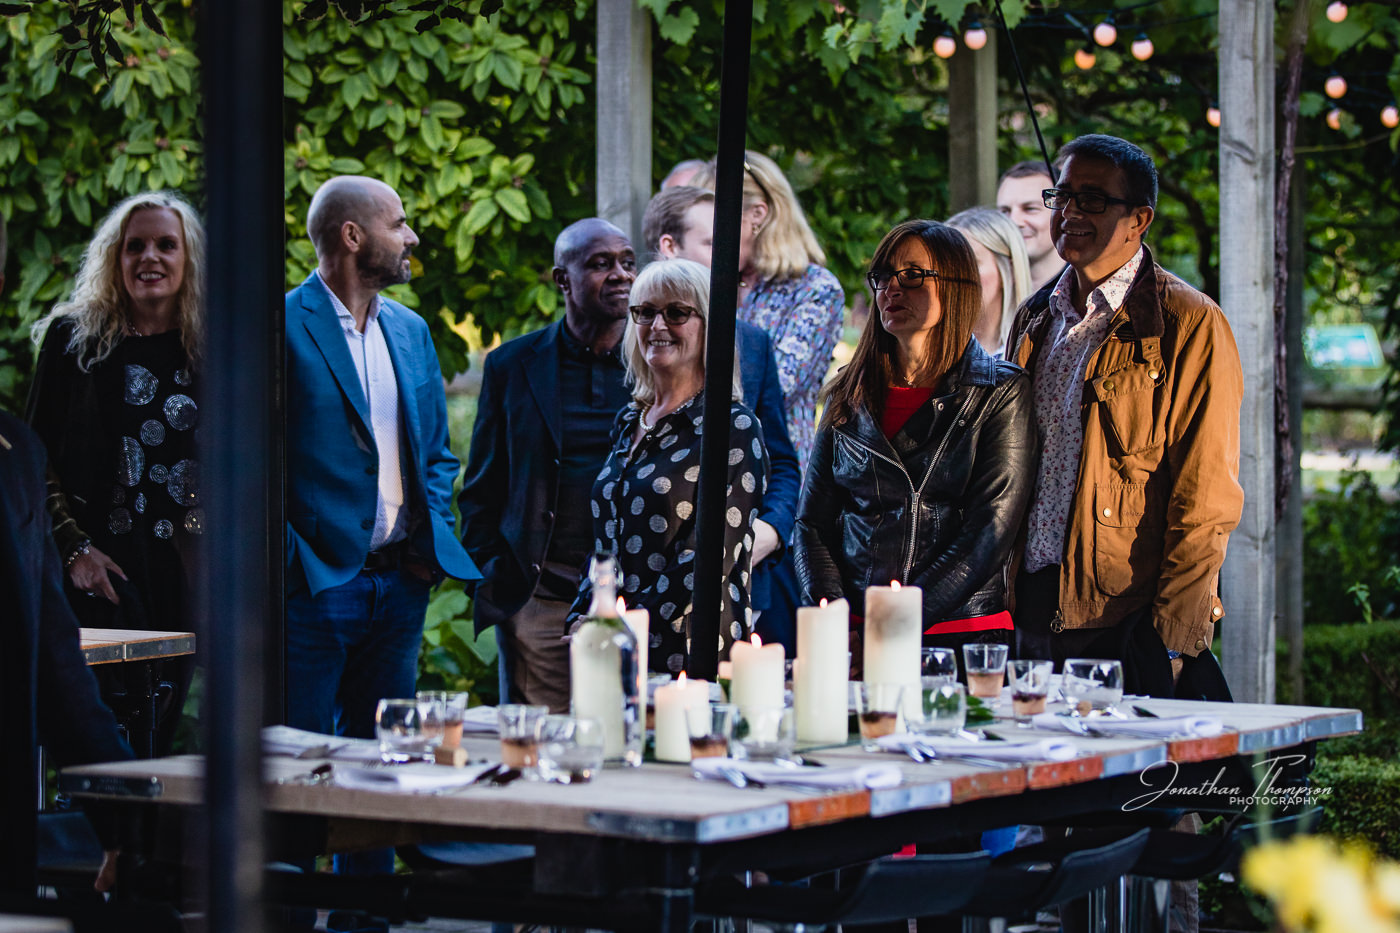 Guests waiting to be seated at an outdoor dining event at Chester Zoo. The table is set for dinner with glasses and candles